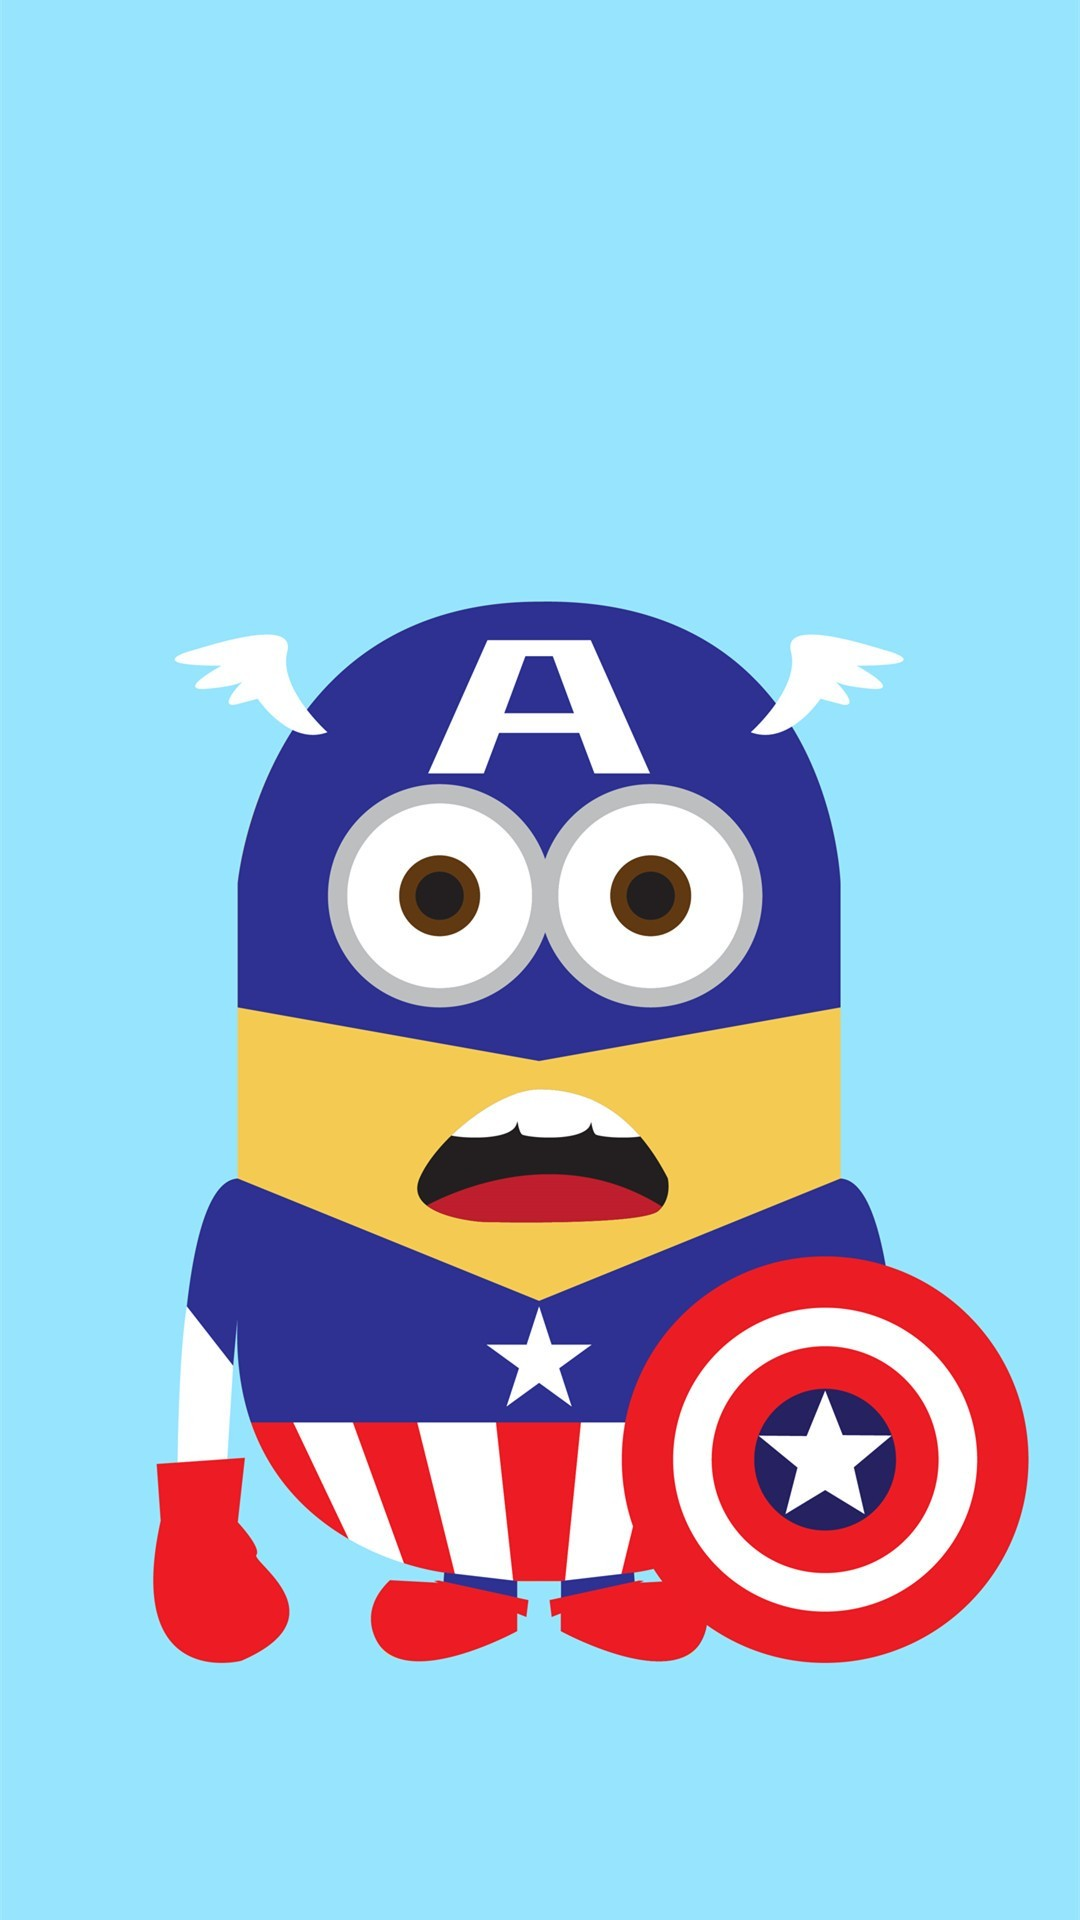 1080x1920 Despicable Me inspired Captain America minion iphone 6 plus wallpaper for  2014 Halloween